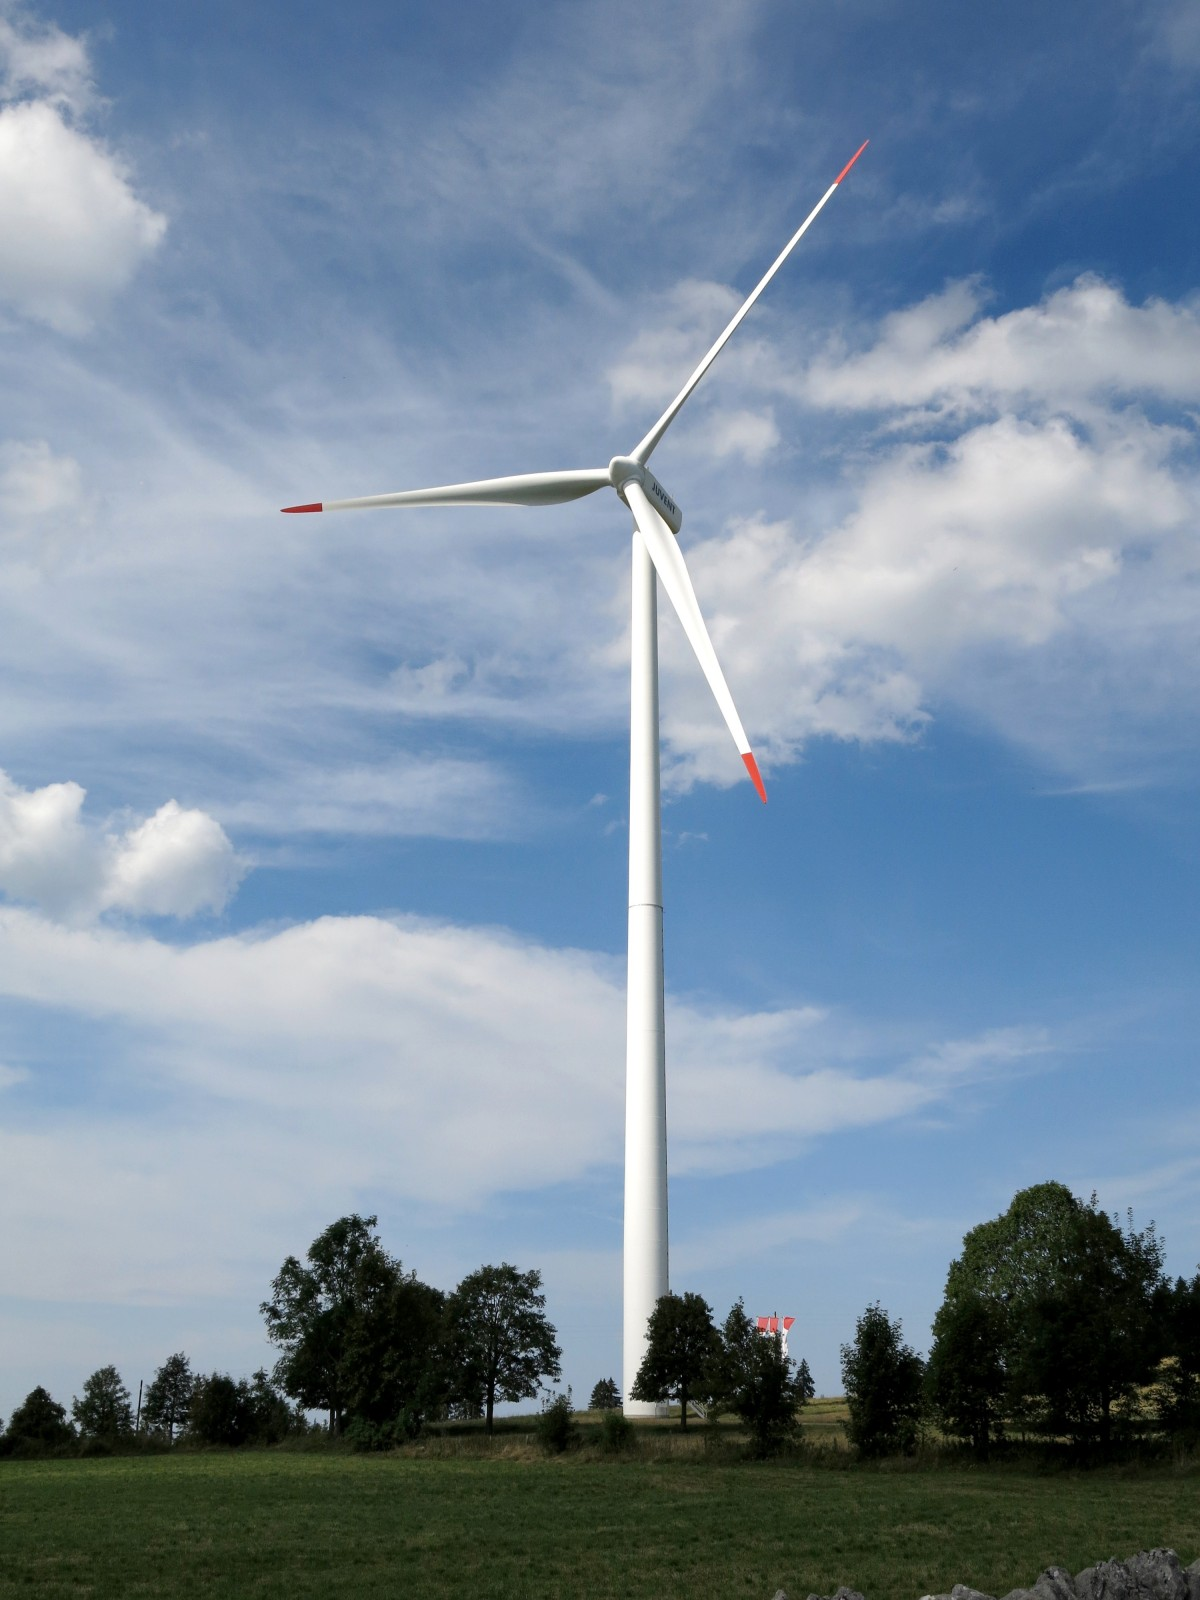 wind_power_alternative_energy_power_generation_renewable_energy_wind_energy_energy_wind_power_plant_current-521562